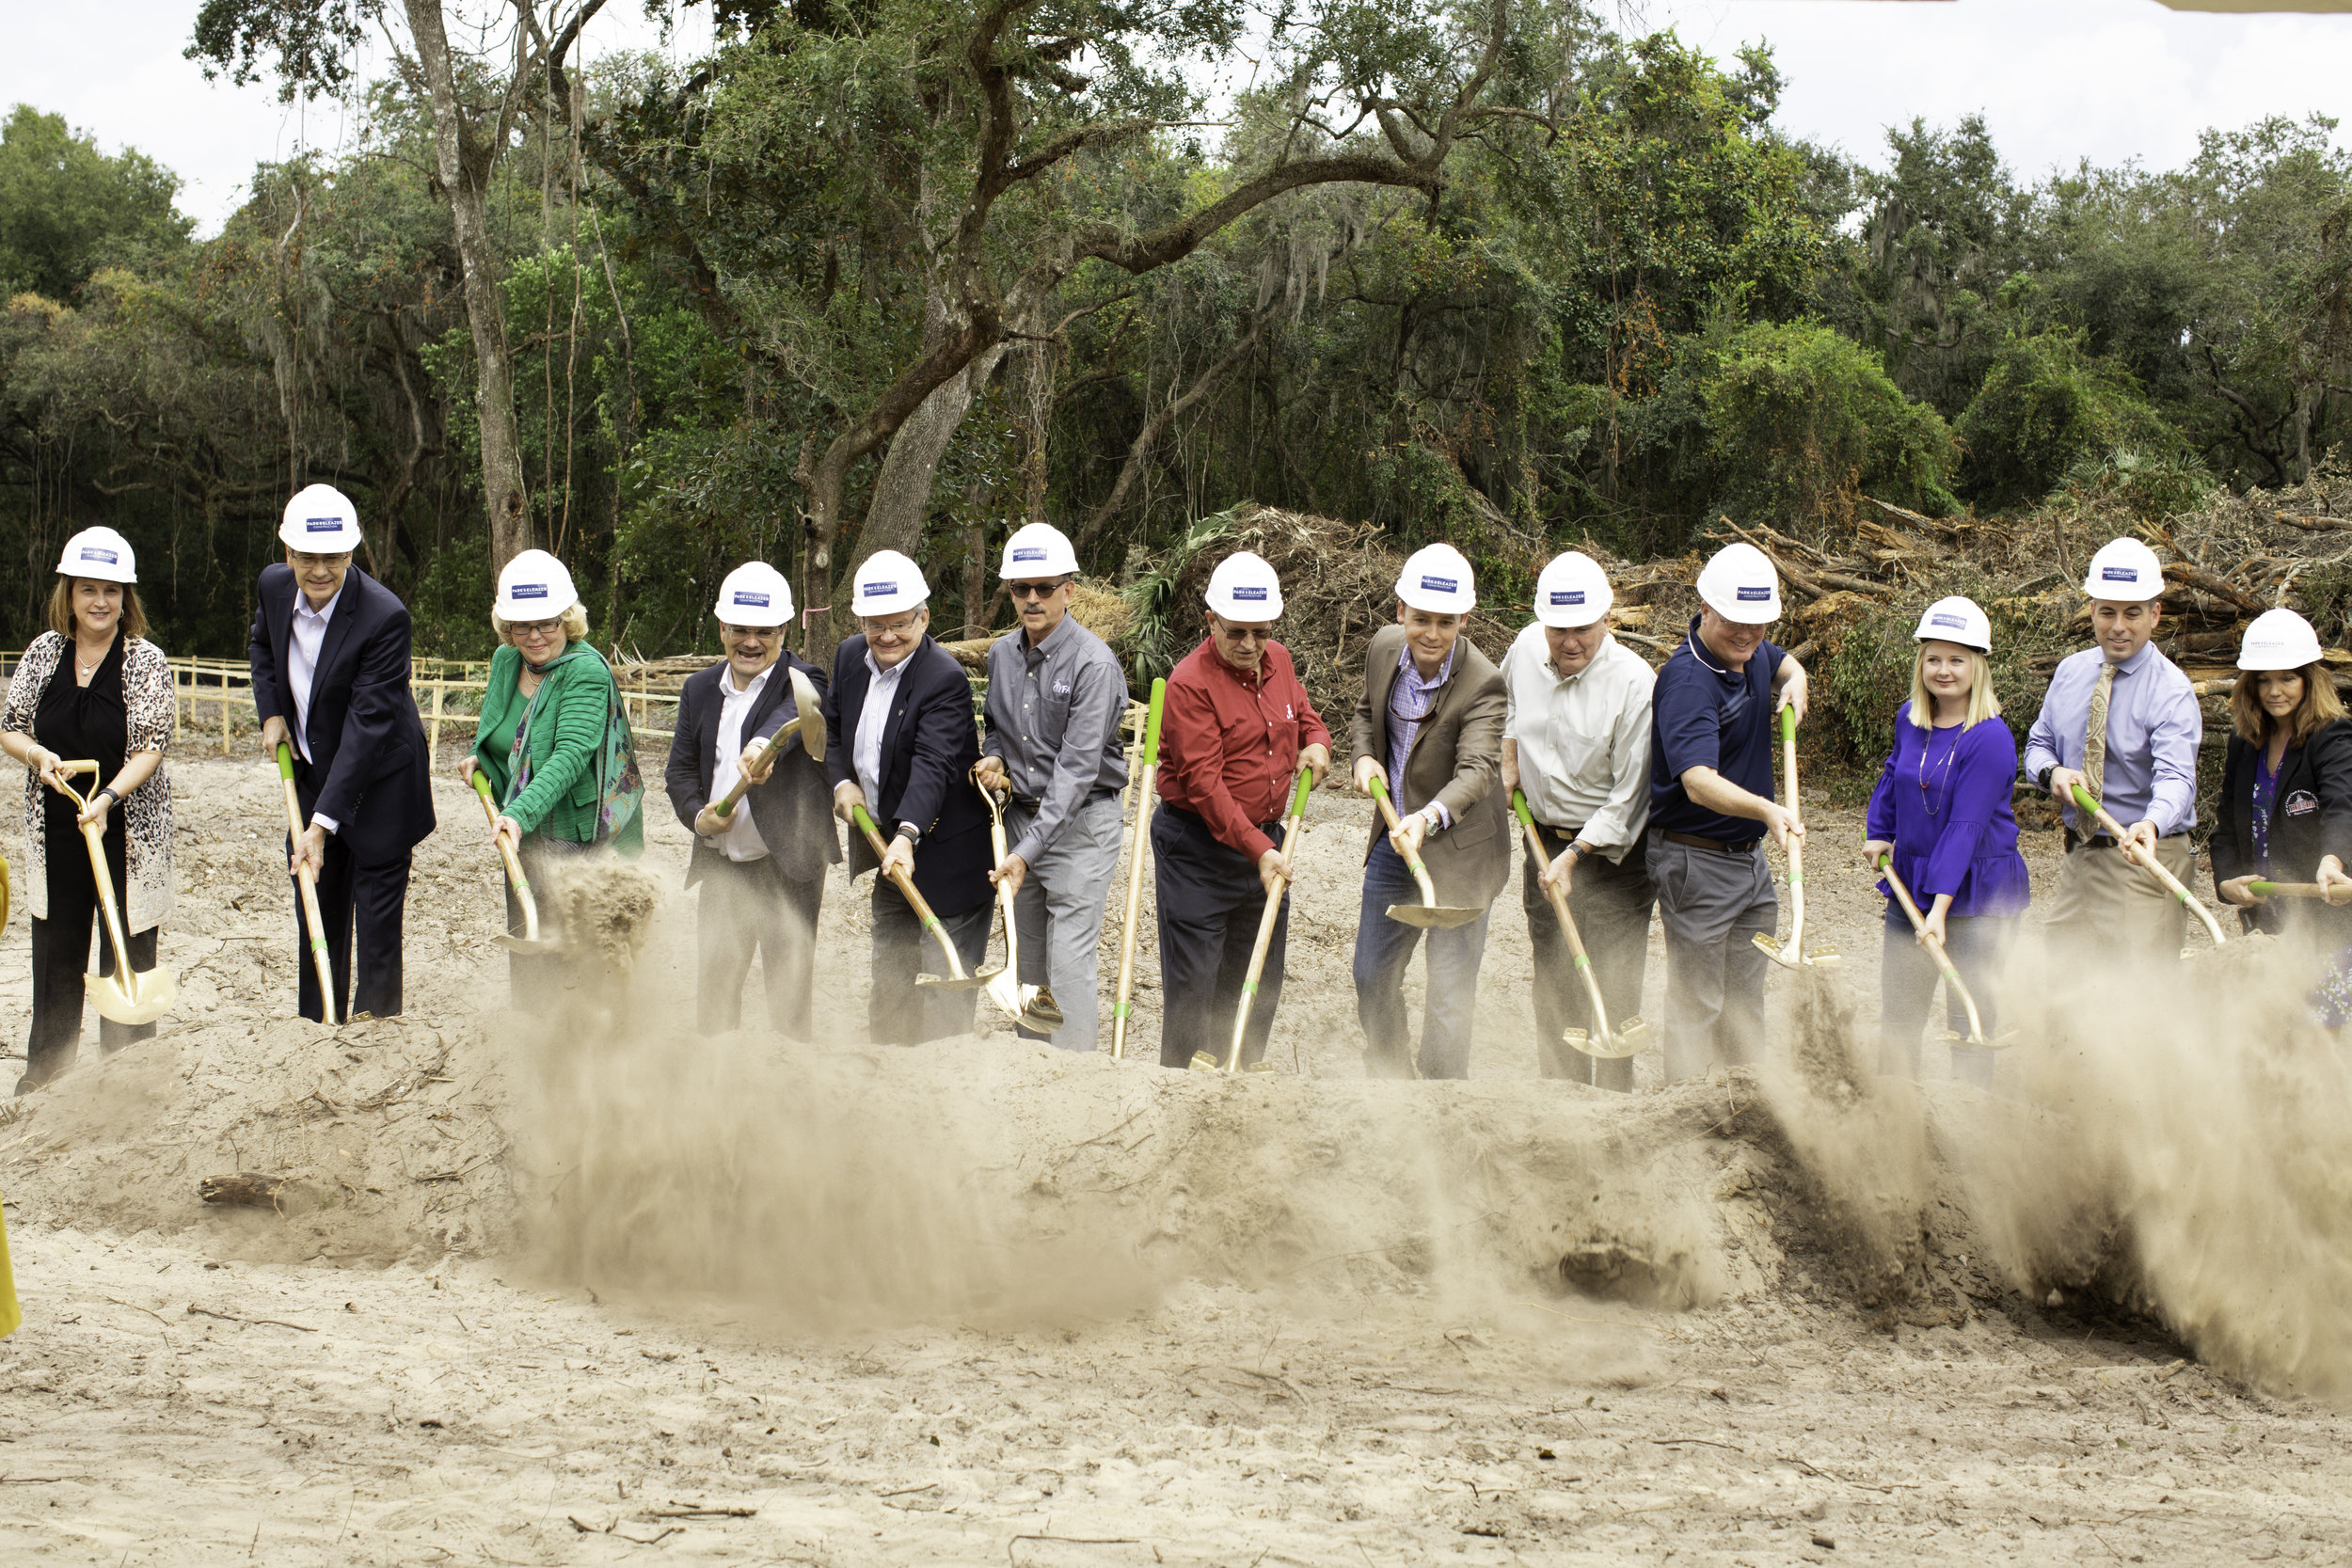 A groundbreaking ceremony was held on November 2, 2018 for The Commons of Speer Village on Plathe Road.